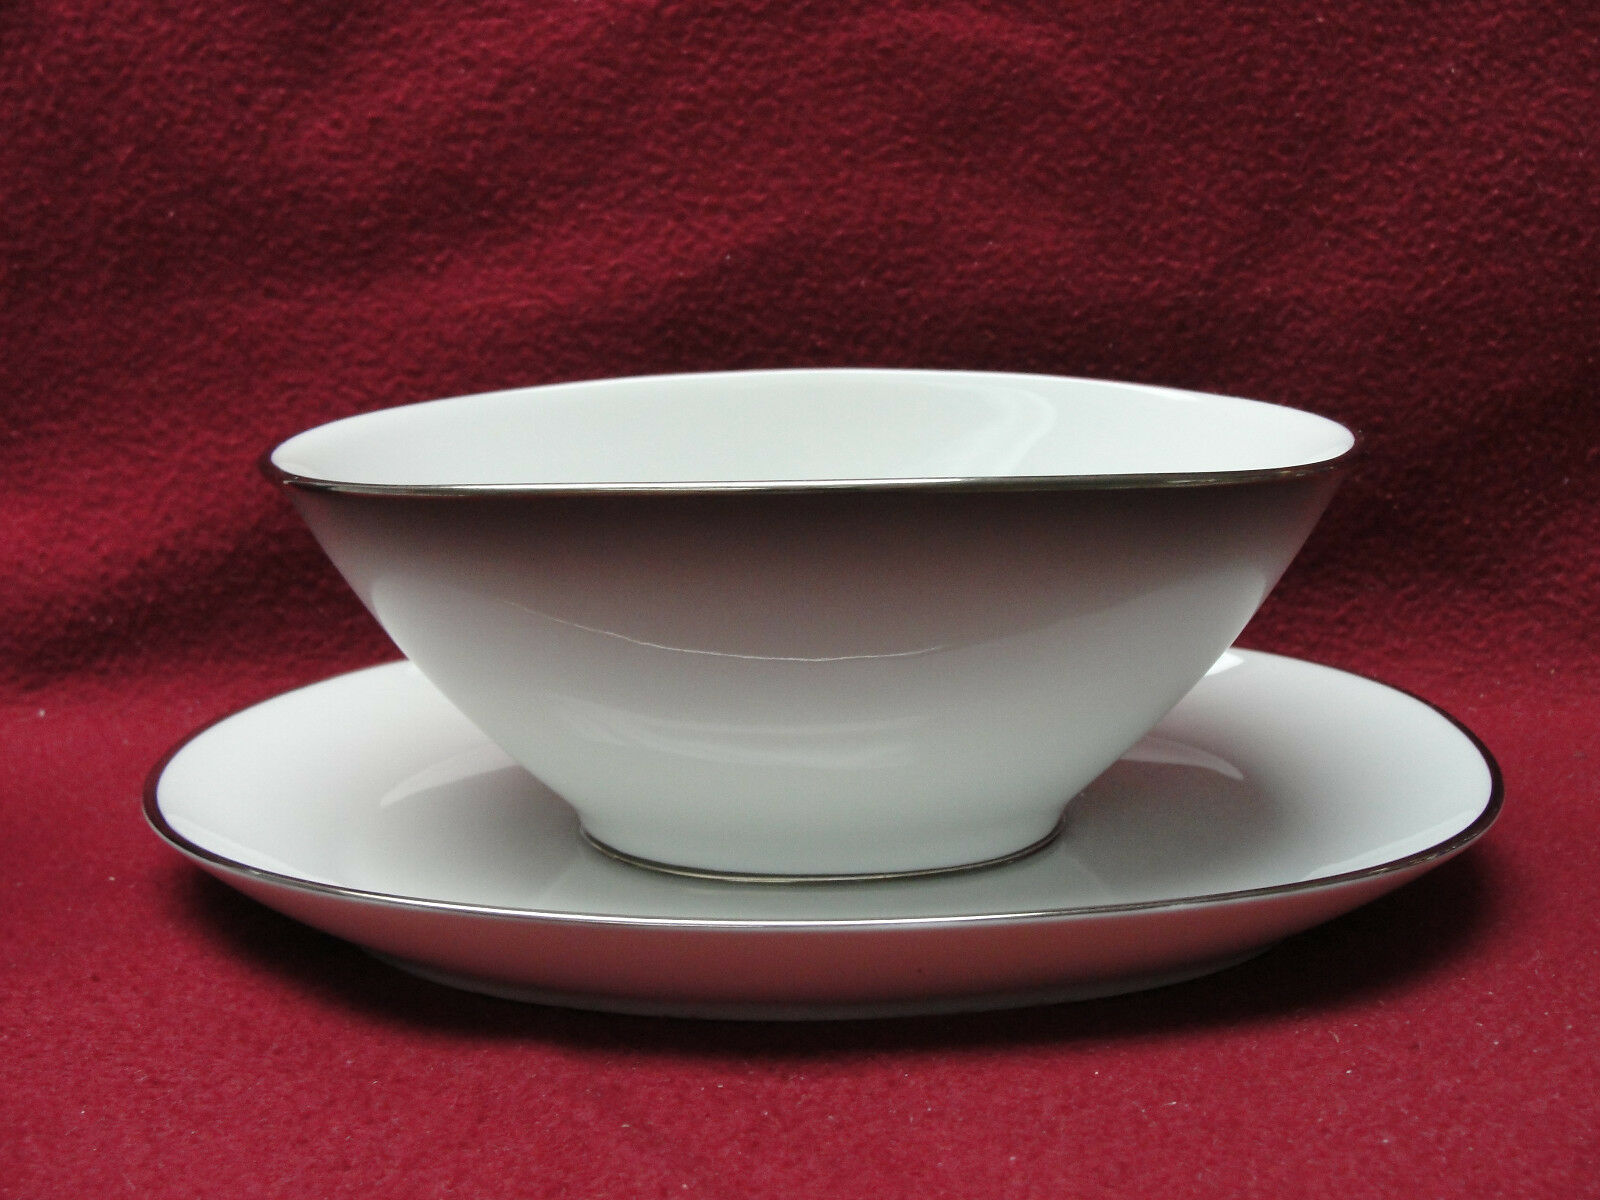 Primary image for ROSENTHAL China - ELEGANCE Pattern (Bettina) - GRAVY BOAT